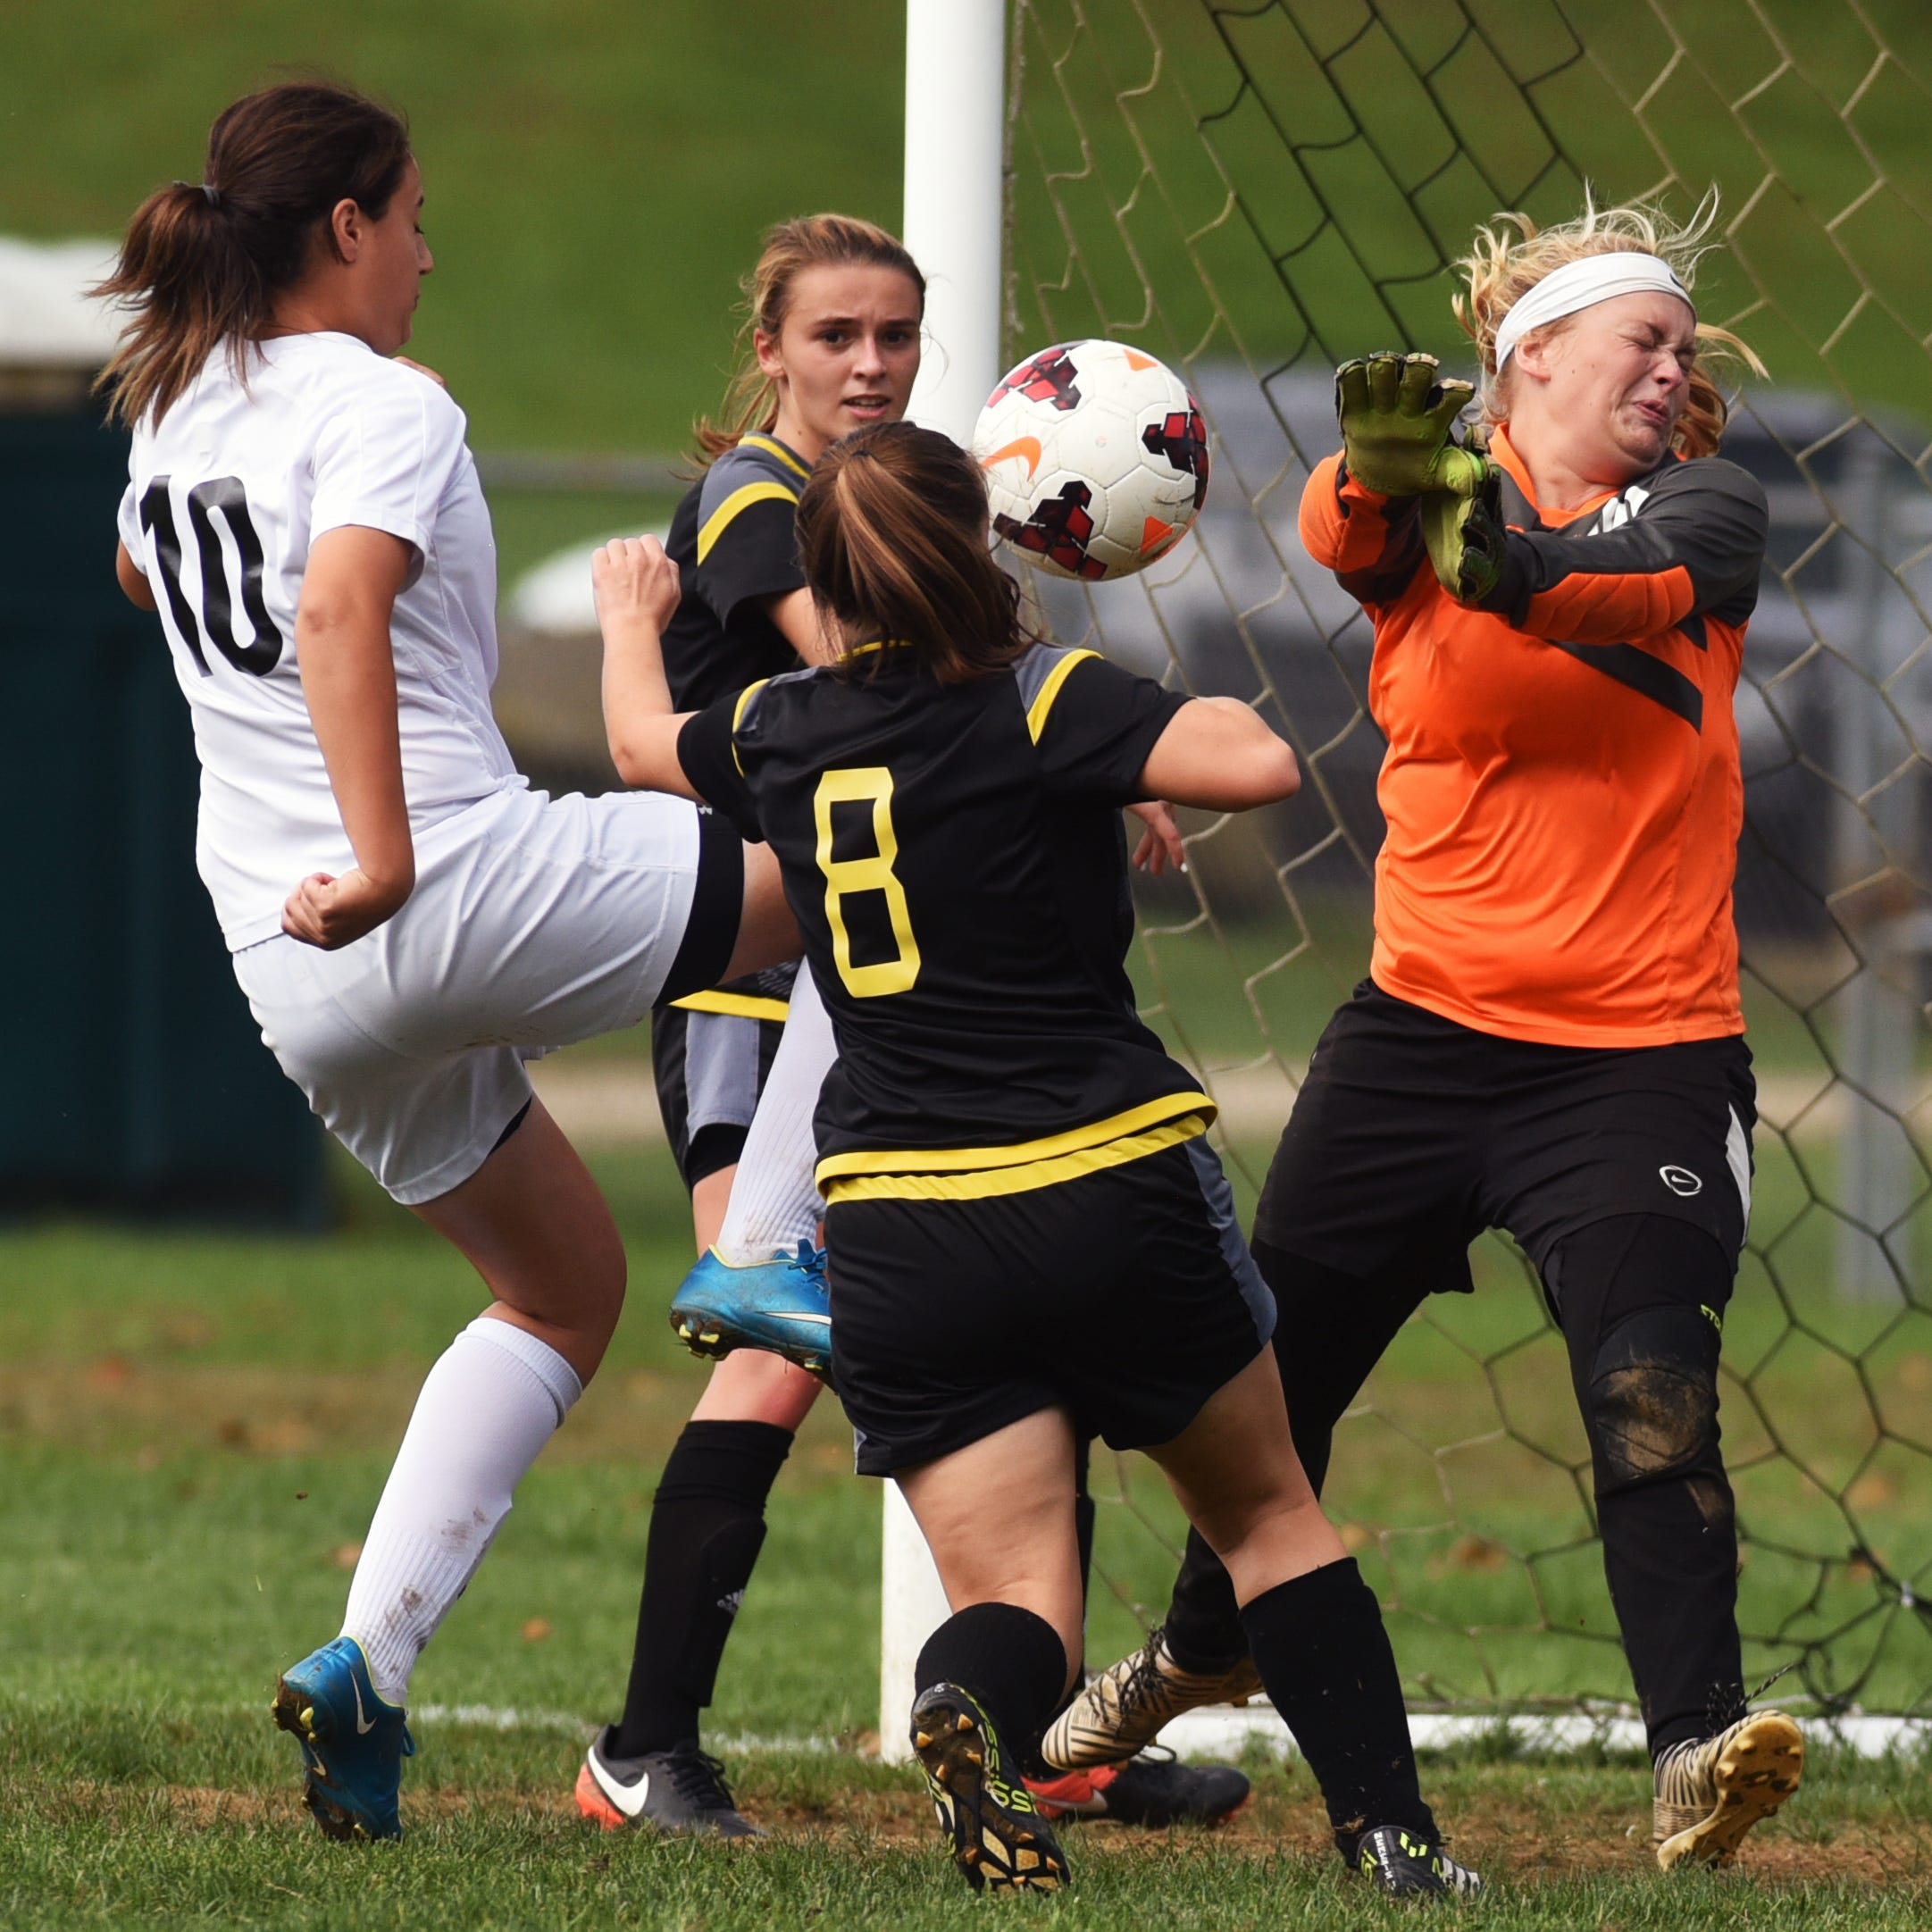 Bailey Long O'Rourke knees a shot past Tri-Valley keeper Faith Prouty during the Lady Bears' 7-0 win against Tri-Valley on Saturday at Kenny Wolford Park. The win sent River View to 11-3-1 overall.